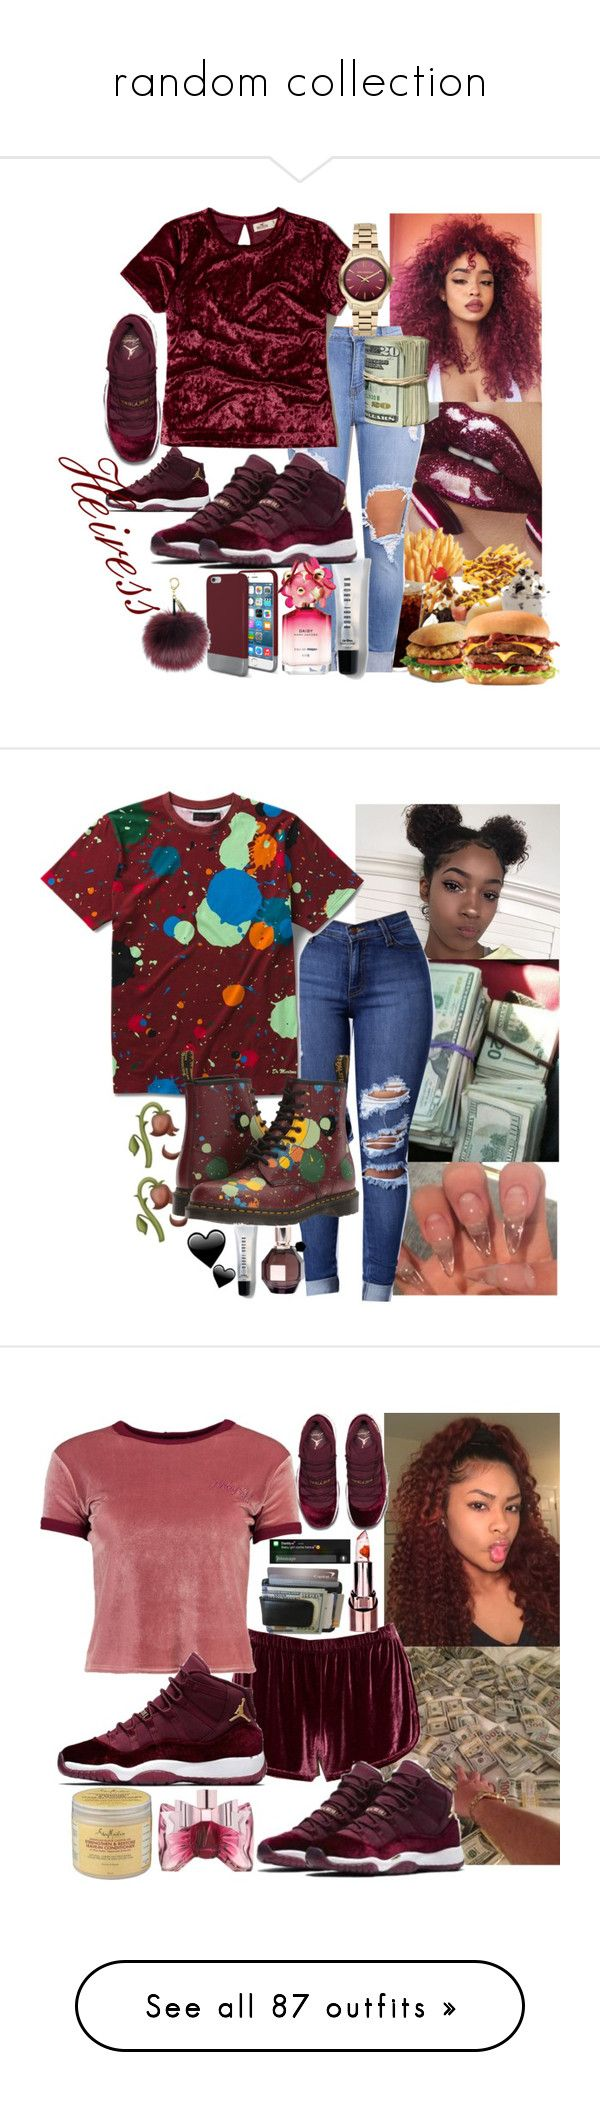 """random collection"" by bxbysnoop ❤ liked on Polyvore featuring NIKE, Original Penguin, Bobbi Brown Cosmetics, Hollister Co., Karl Lagerfeld, Marc Jacobs, Dr. Martens, Viktor & Rolf, Boohoo and adidas"